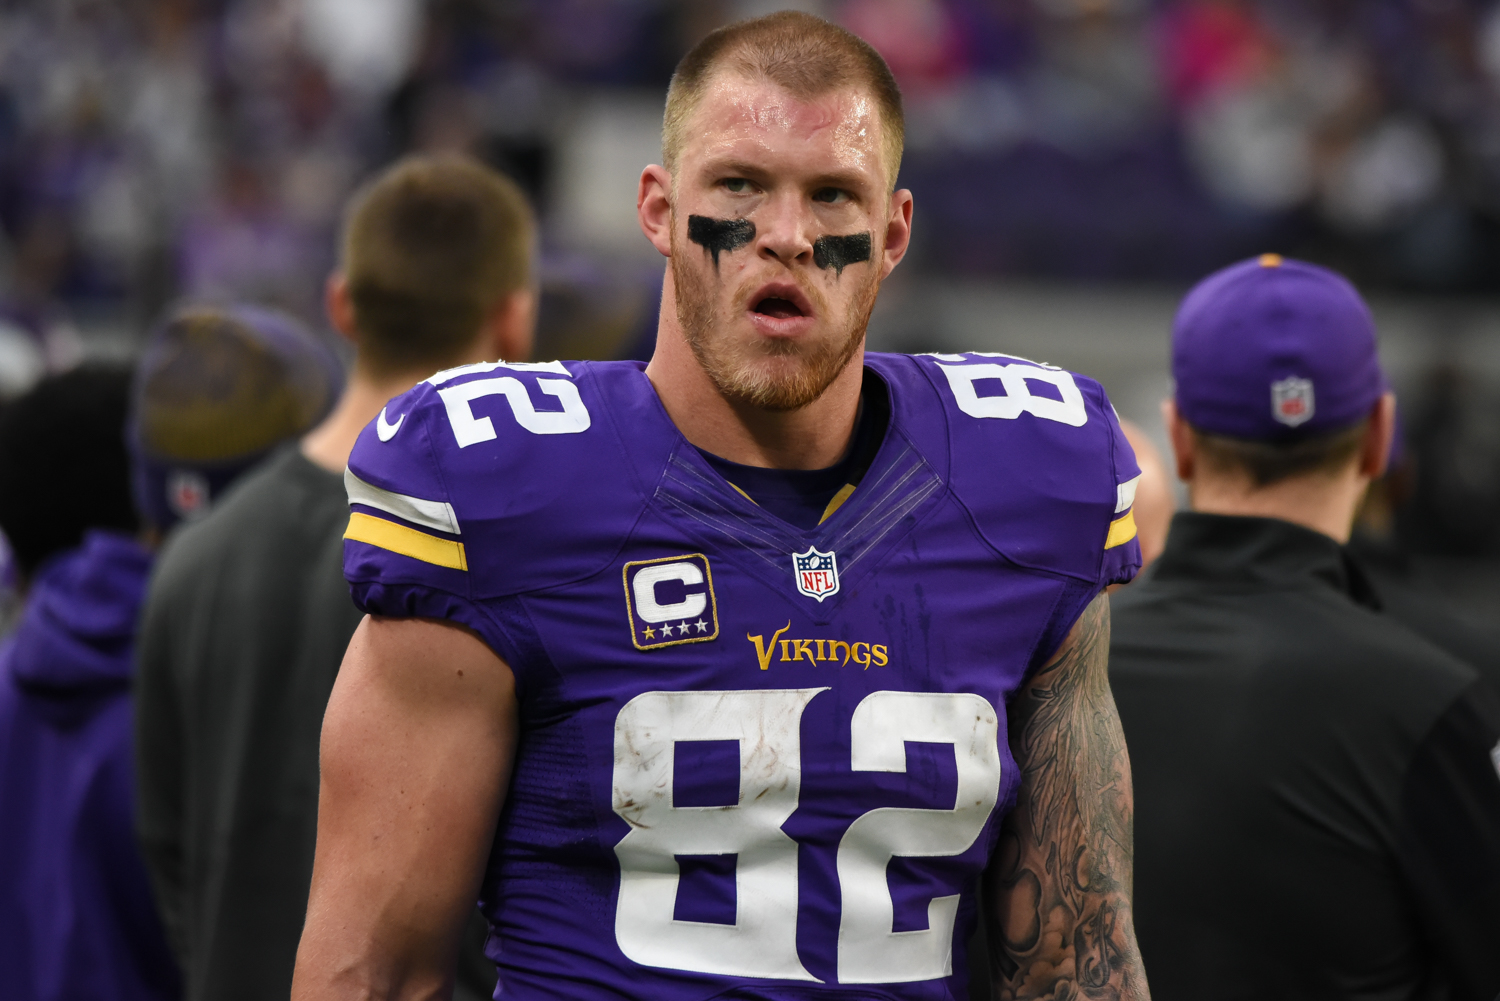 Kyle Rudolph Speaks on the 'Duck, Duck, Gray Duck' Debate | 105 The Vibe | WGVX-FM